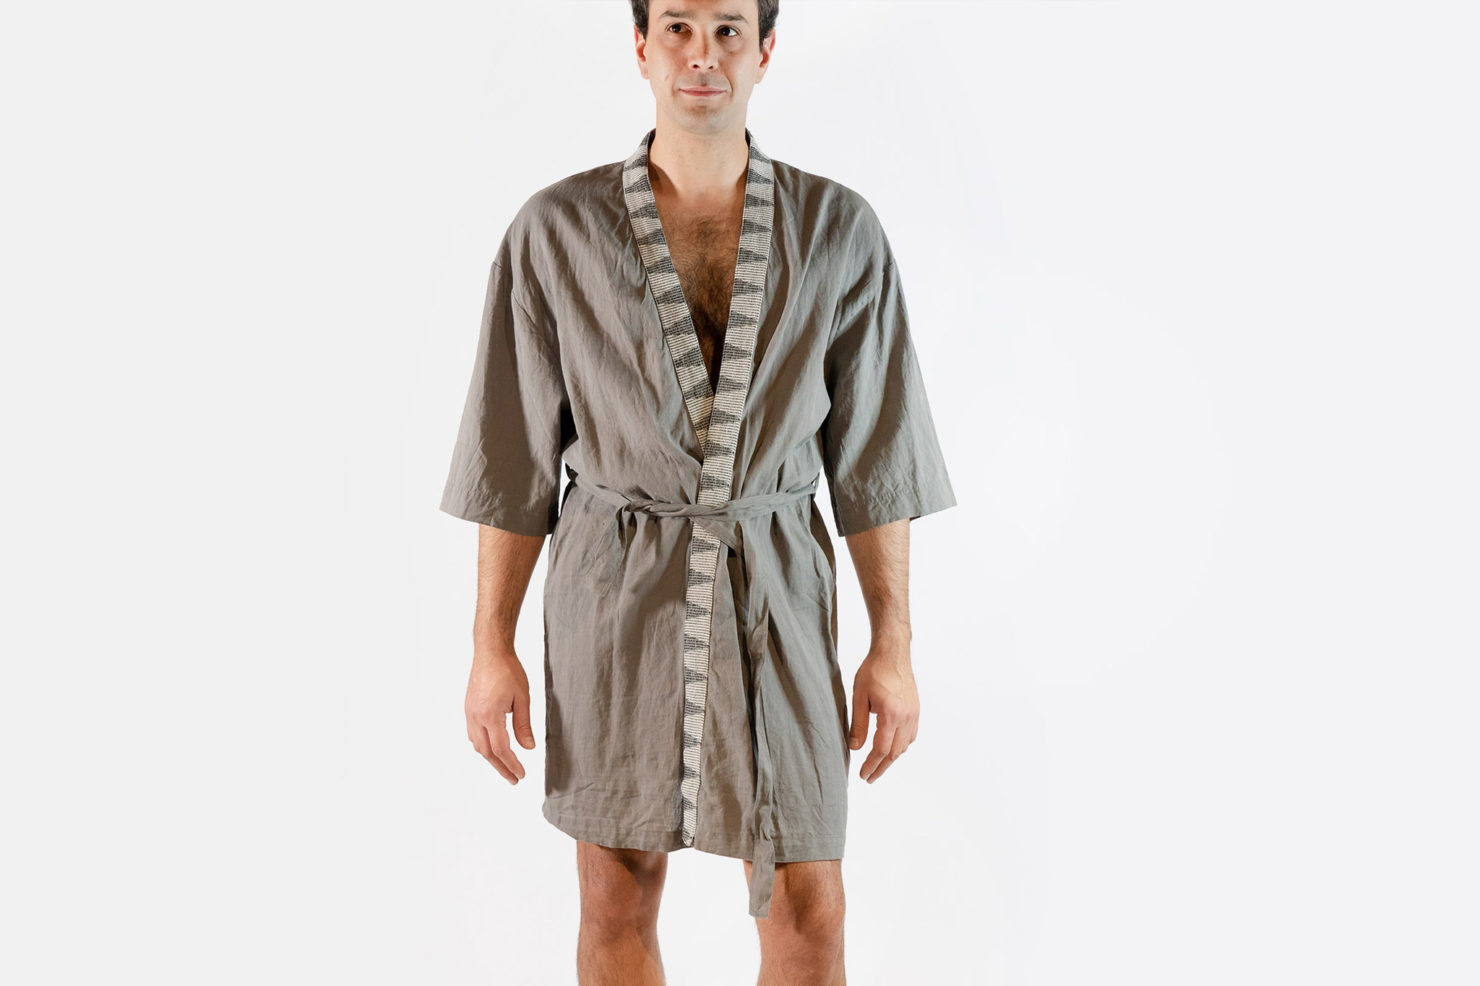 BATHROBE wear – MERAKI